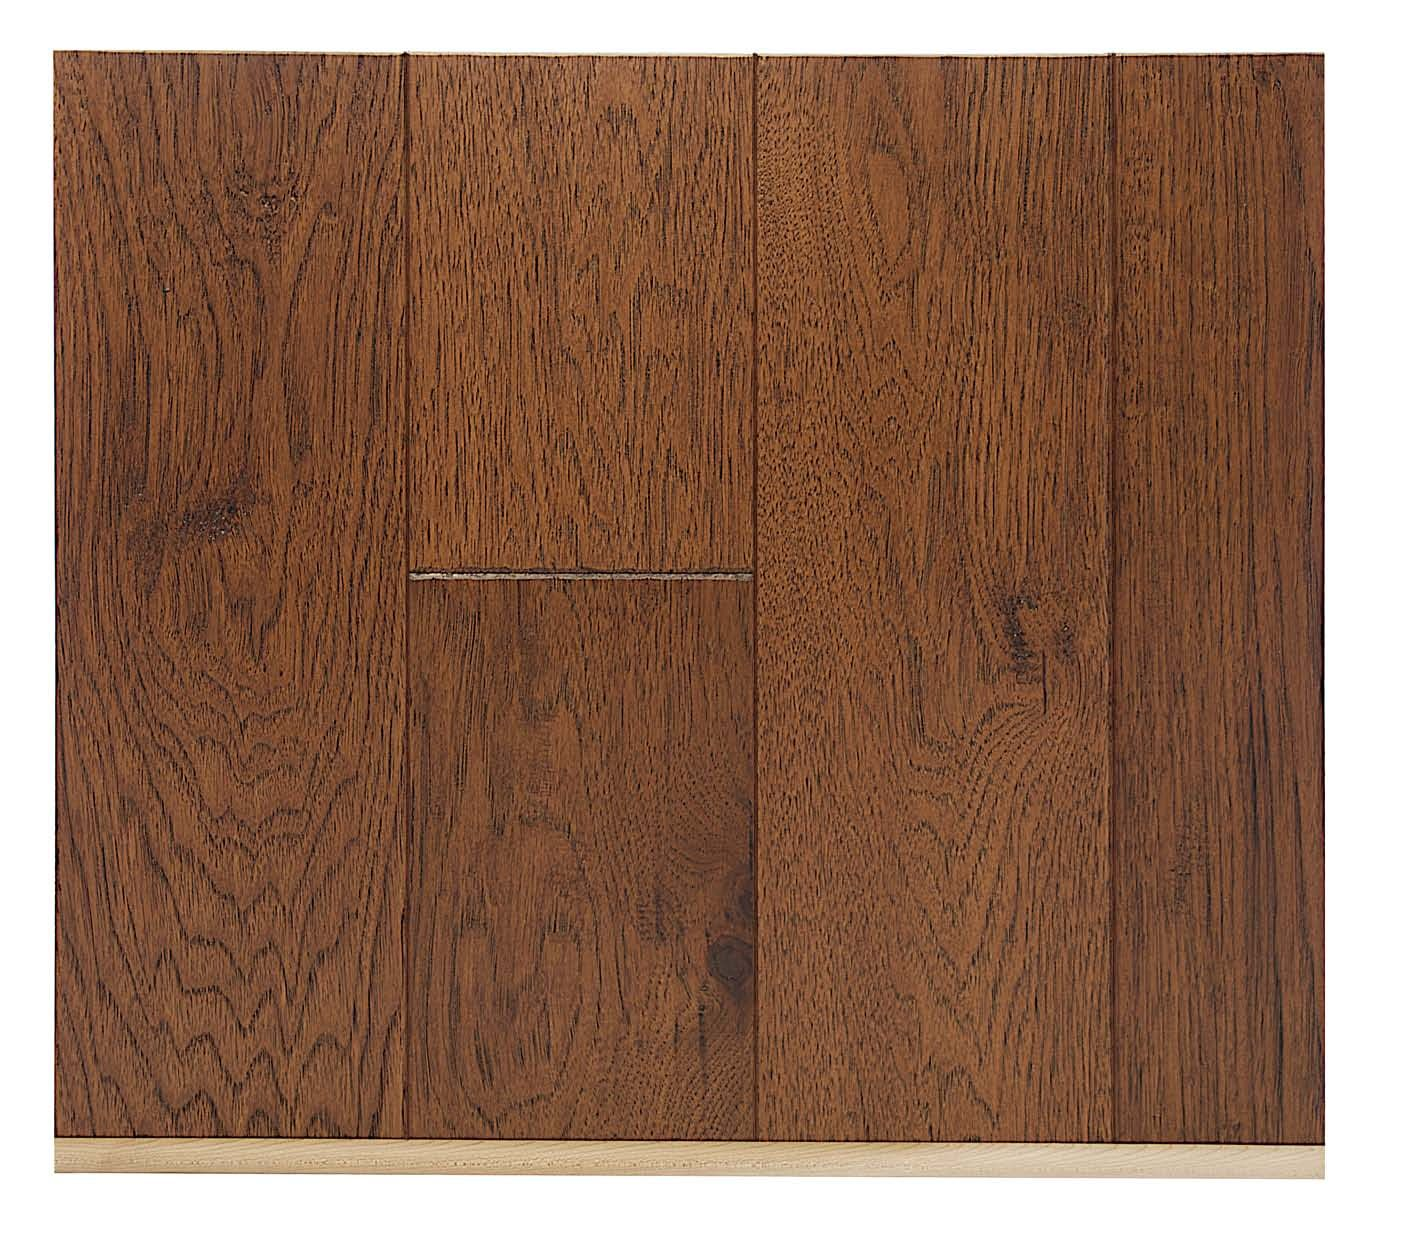 Hand Scraped Maple Oxford By Vintage Hardwood Flooring: Hand Scraped Hickory Character Old Mission By Vintage